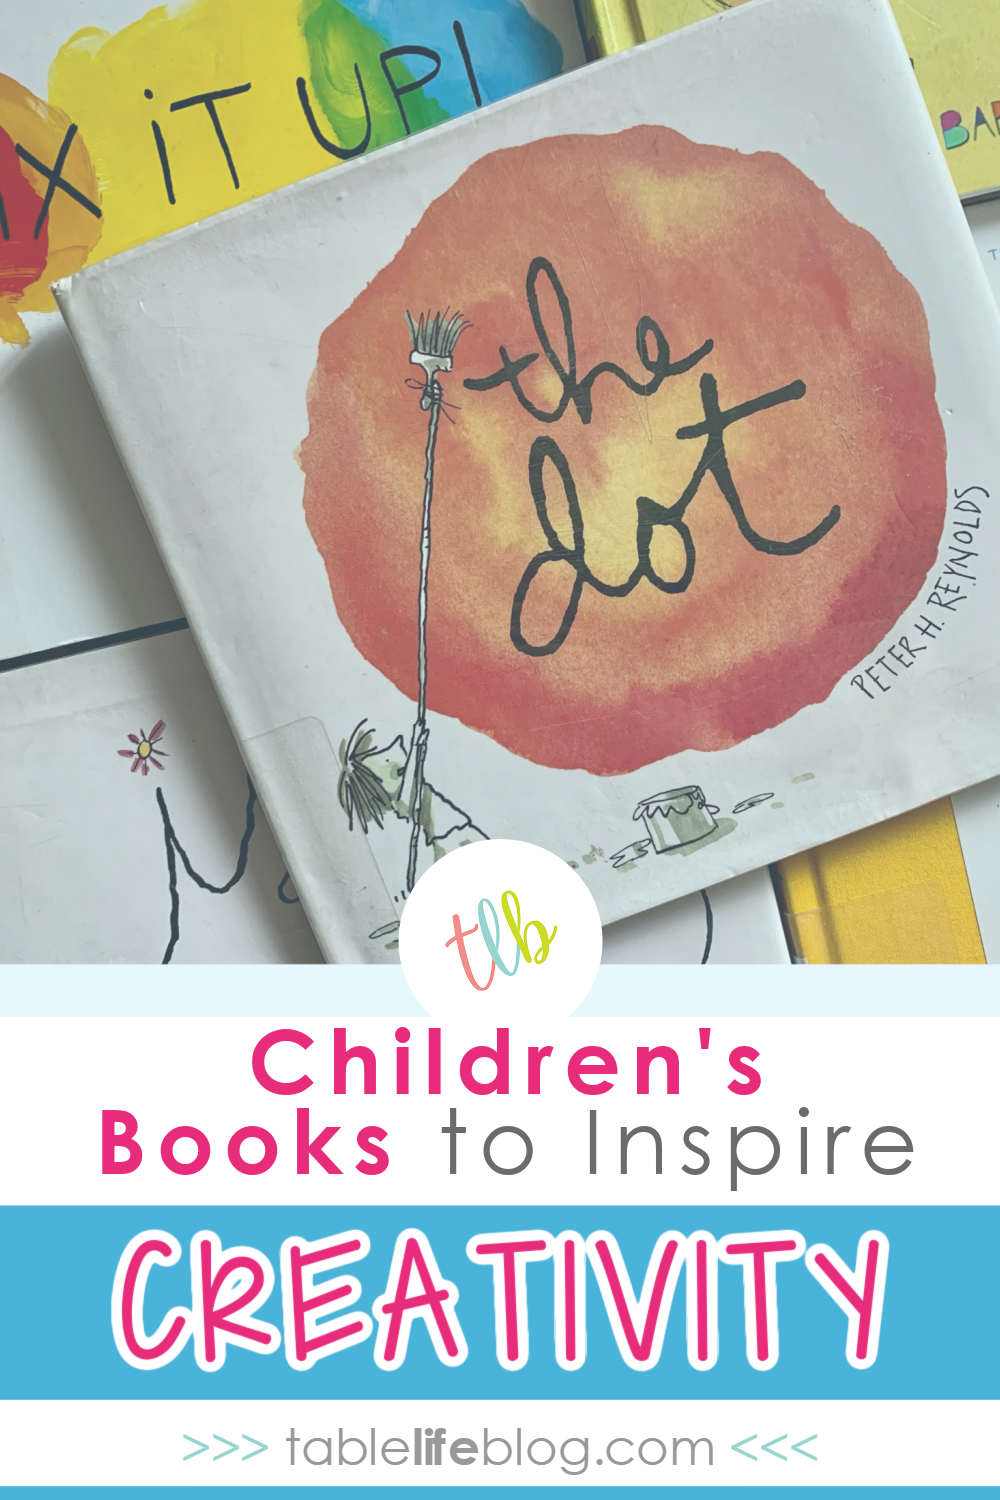 Want to share some creative encouragement with your kiddos? We've got you covered with this fun list of picture books to inspire creativity!